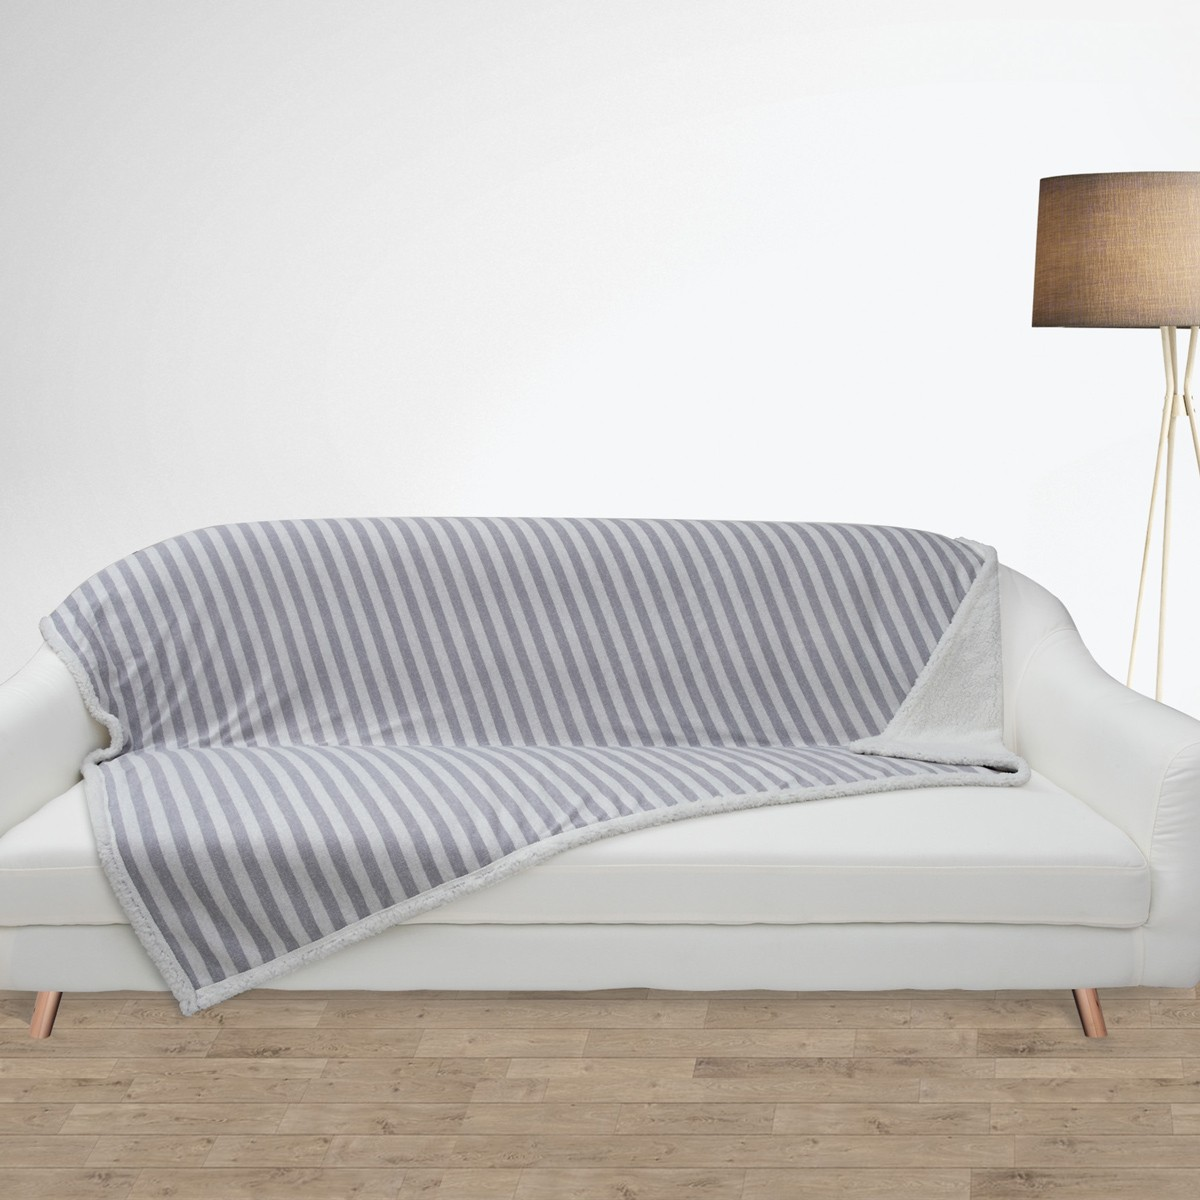 Κουβέρτα Καναπέ Das Home Blanket Line Fleece Sofa 409